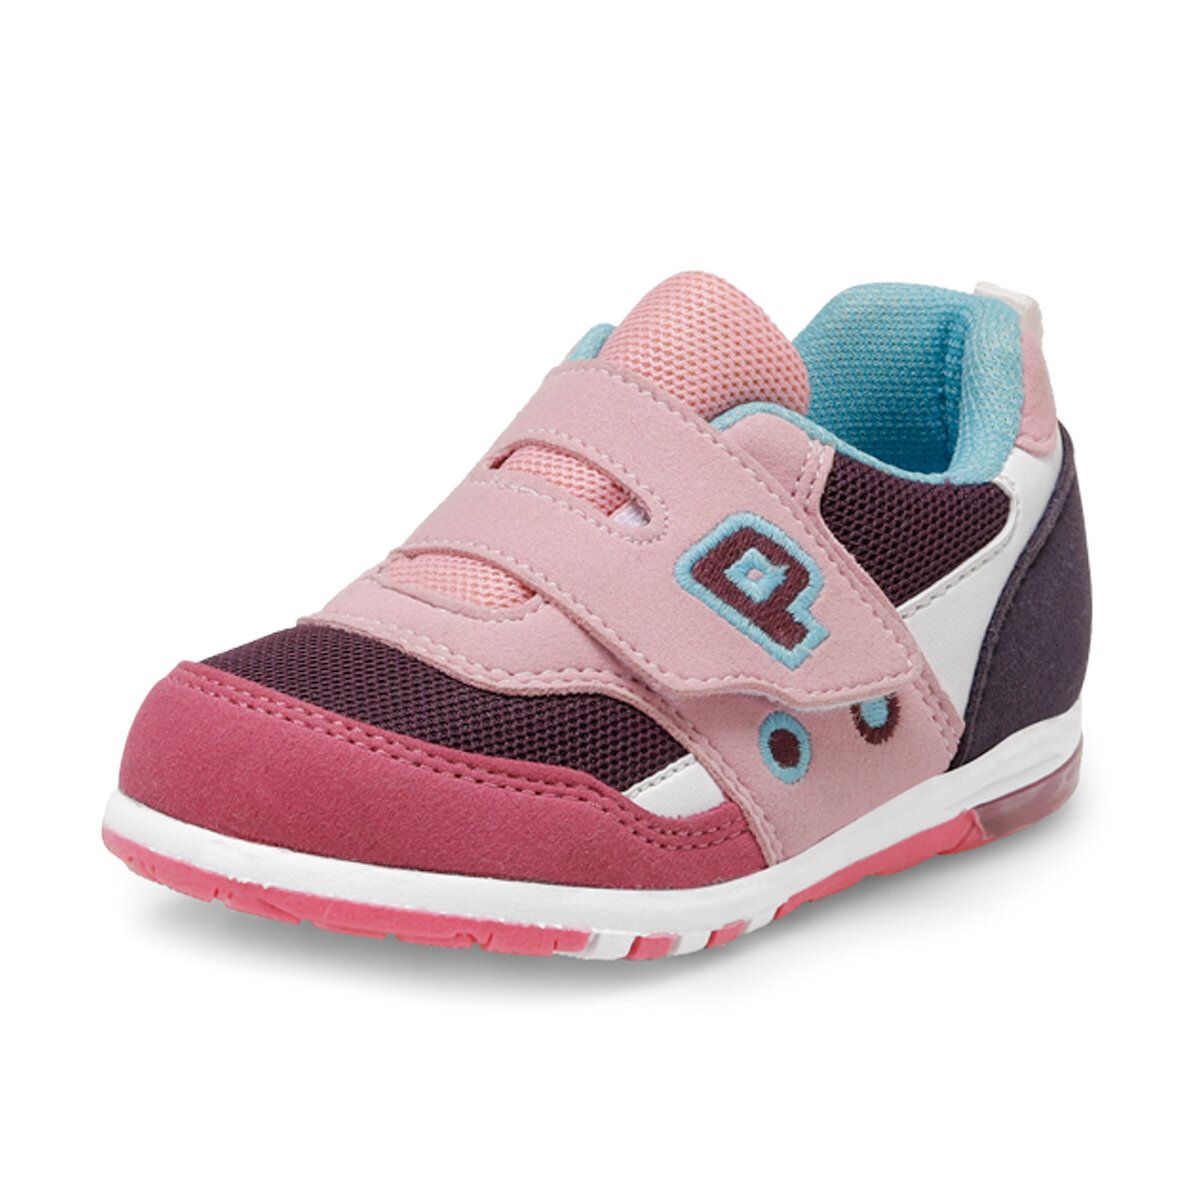 FLO PABLO Purple Female Child Sneaker Shoes Balloon-s